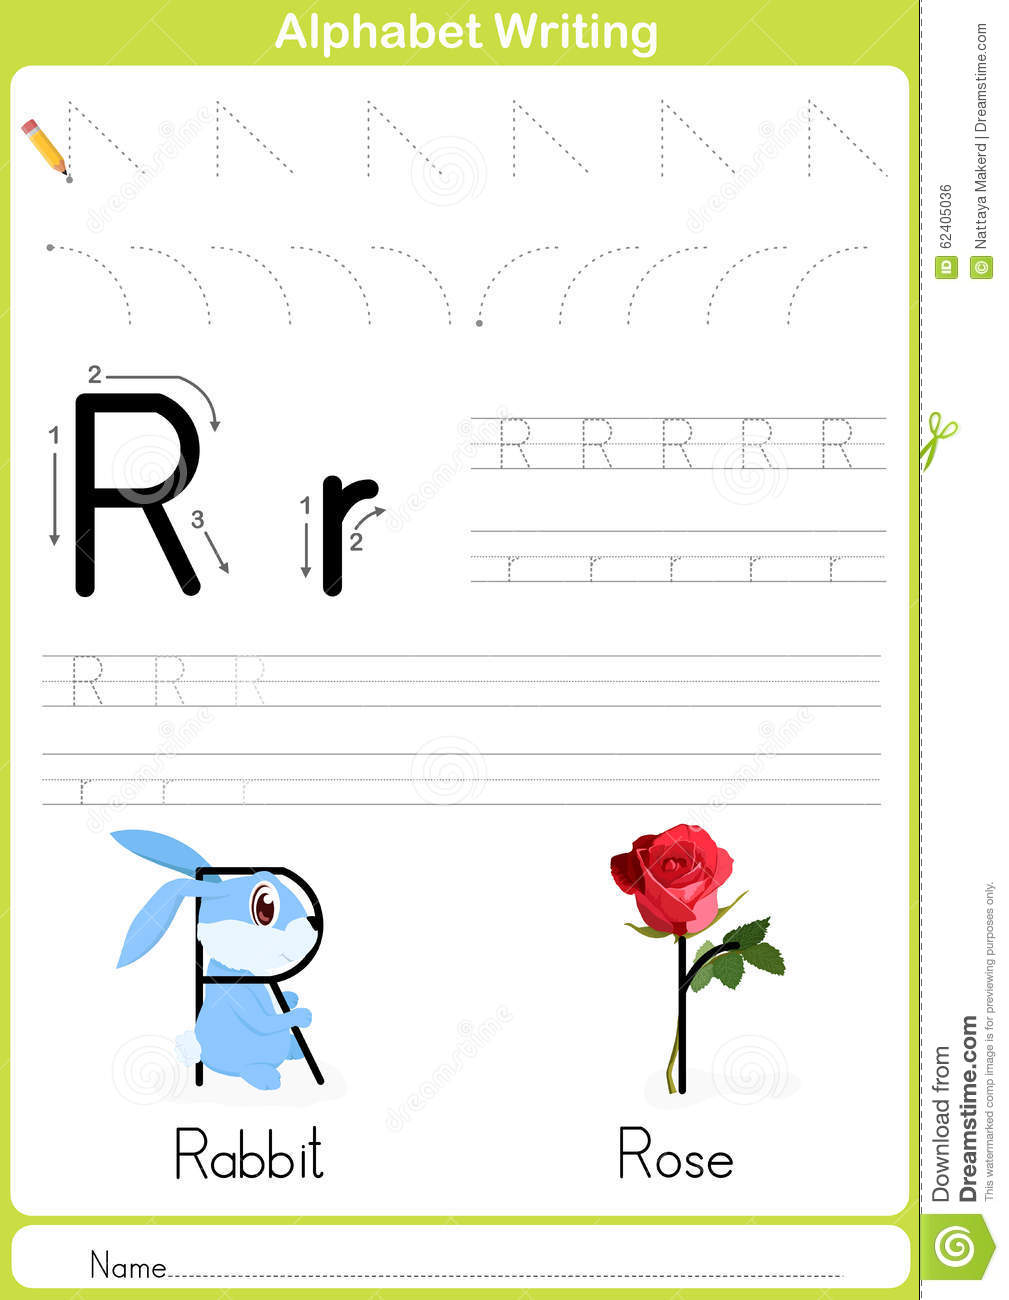 Alphabet A-Z Tracing Worksheet, Exercises For Kids - A4